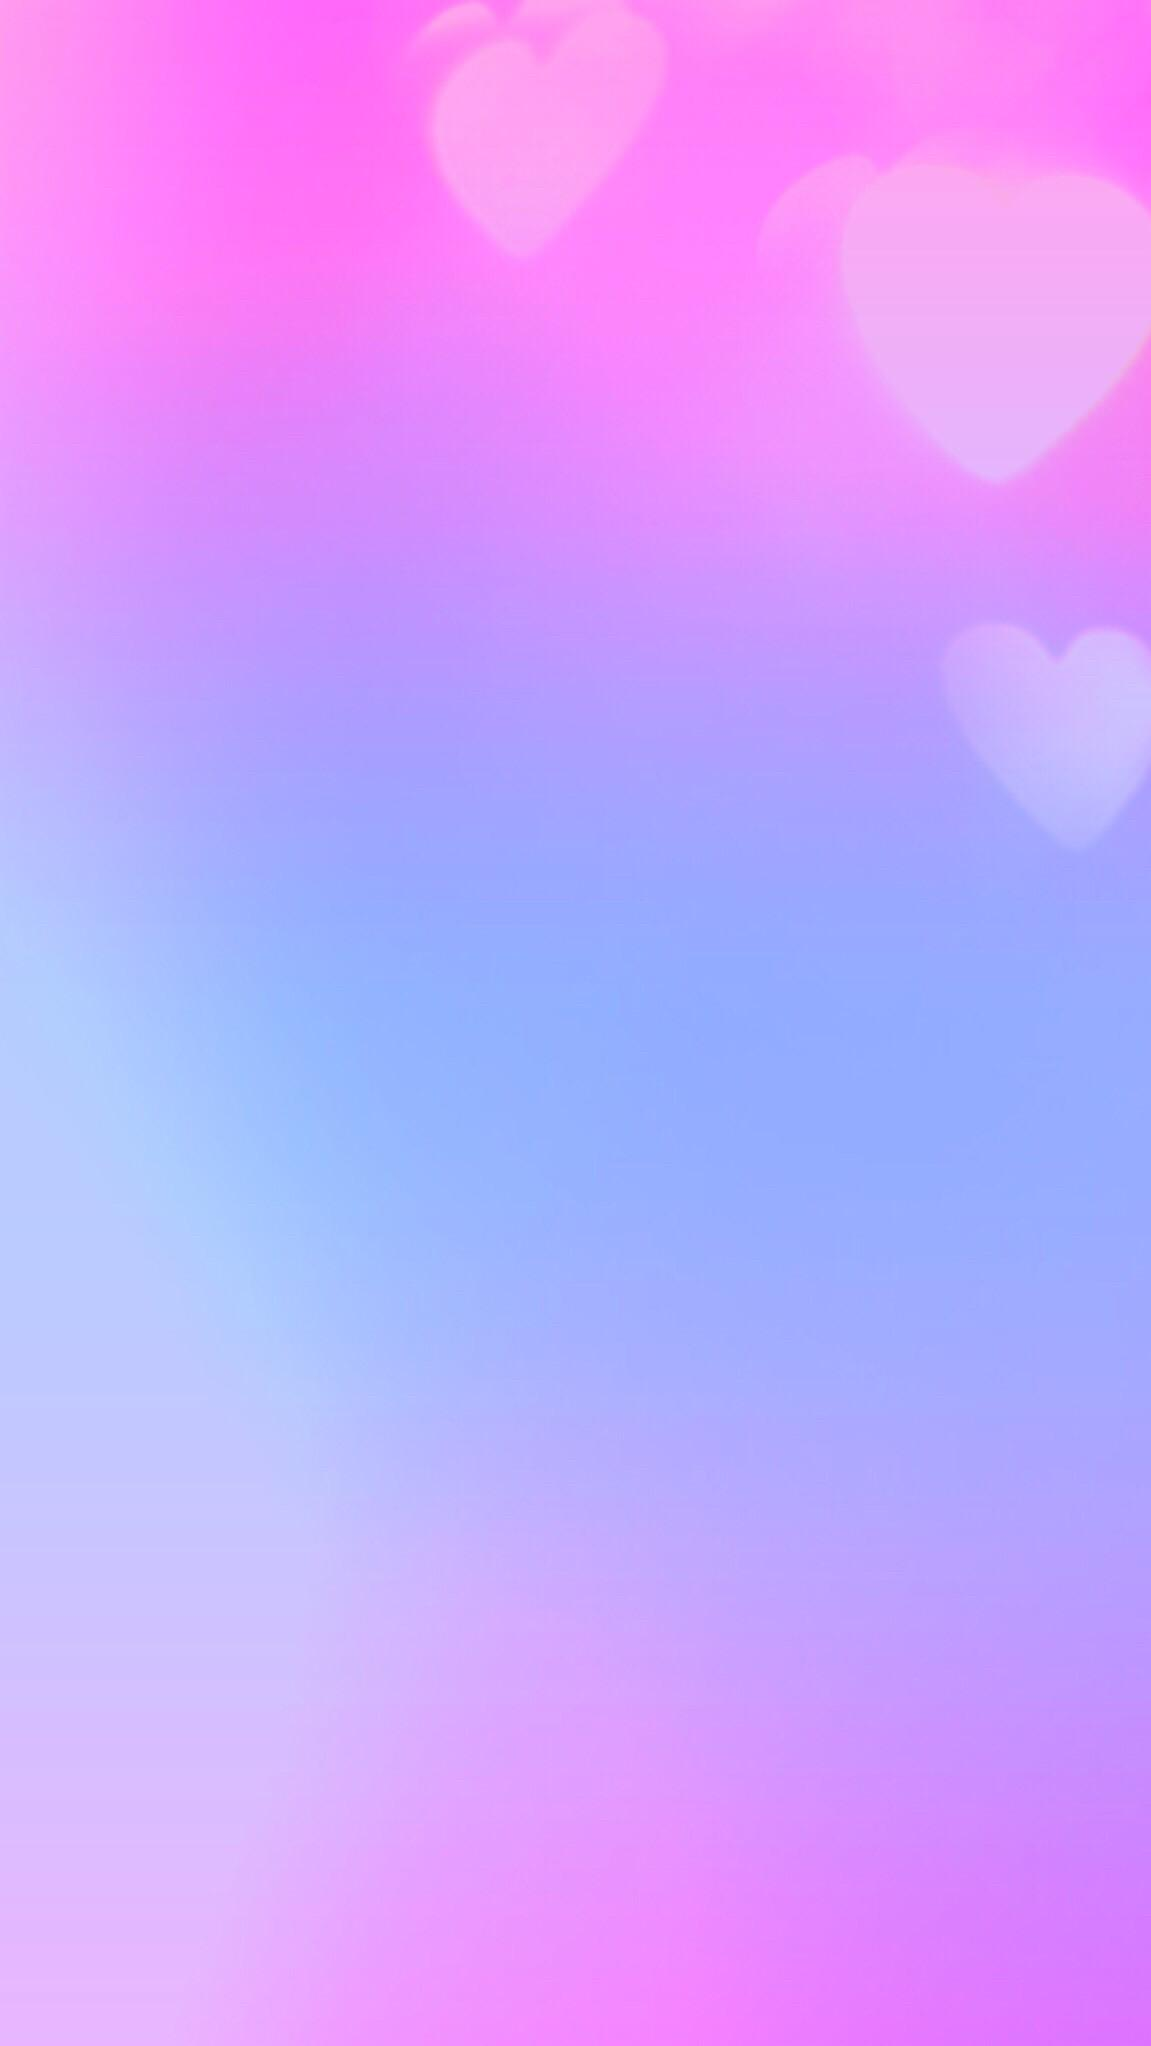 Ombre Pink And Blue Wallpapers - Wallpaper Cave